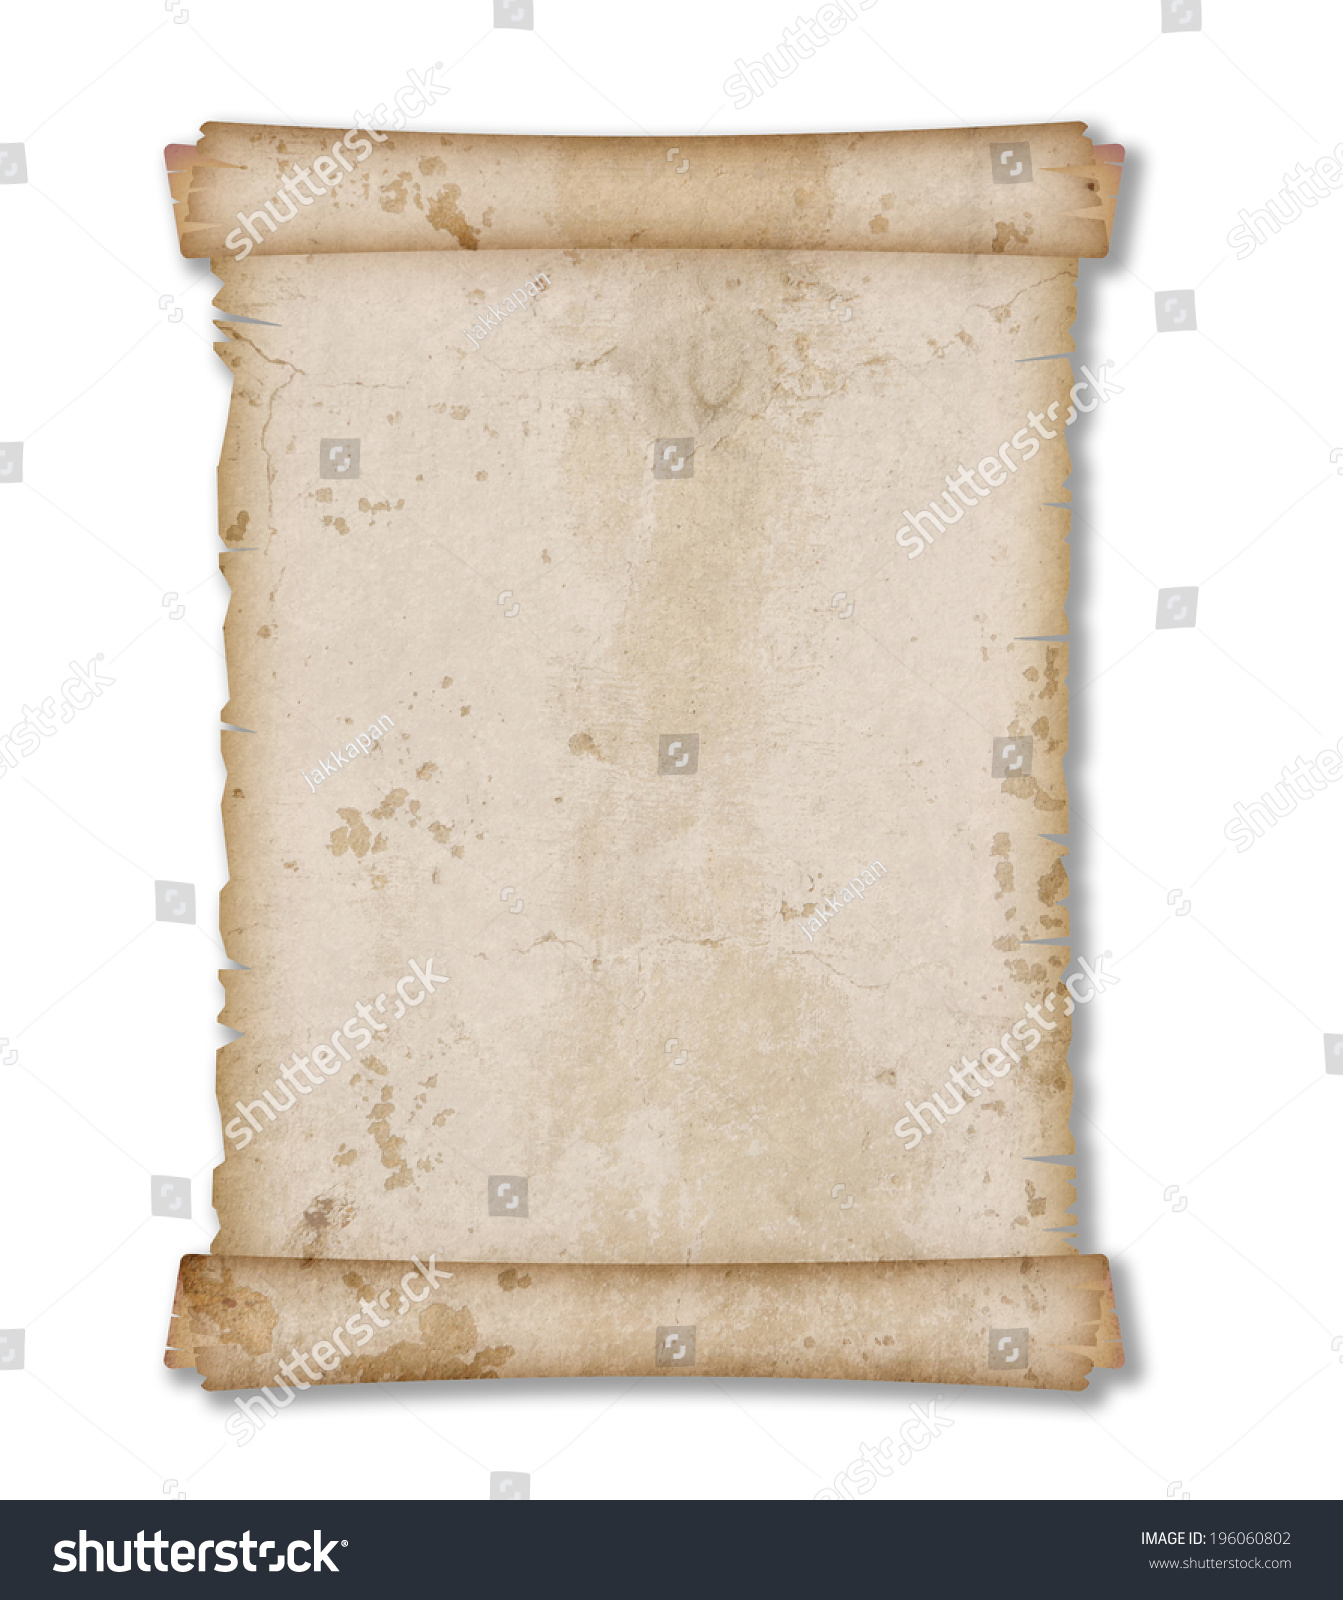 Antique Scroll Paper: Old Vintage And Grunge Paper Scroll Isolated On White